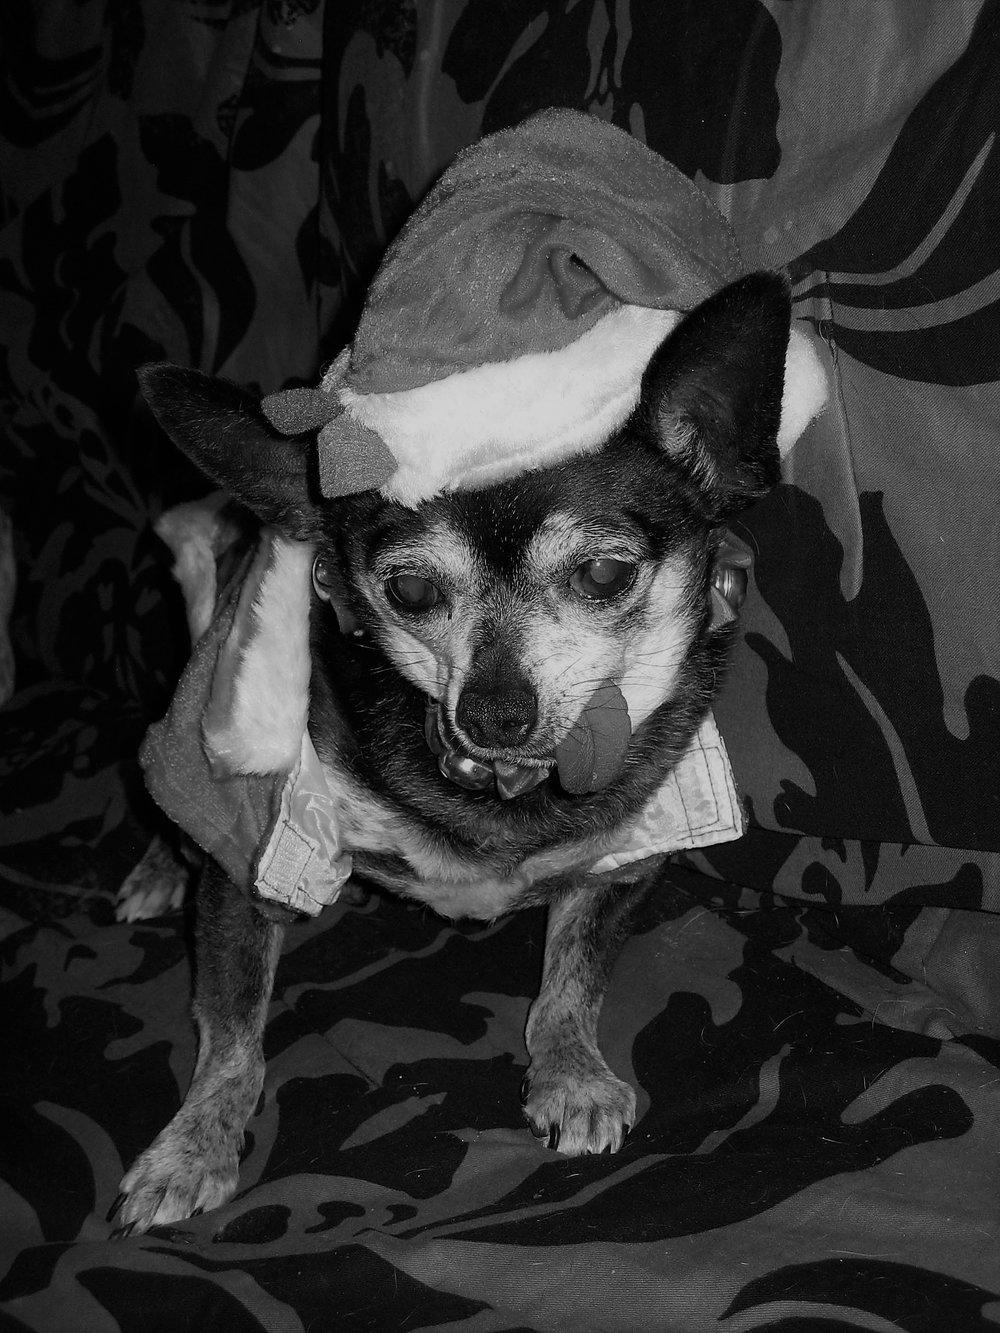 Lazlo - 14-years-oldLazlo came as a bonded pair with a dachshund named Maxine. They weren't really bonded.He was very fearful and terrified of humans. He came from a puppymill.He was just starting to warm up to us, and would even take a treat from your hand, but he died of heart failure.